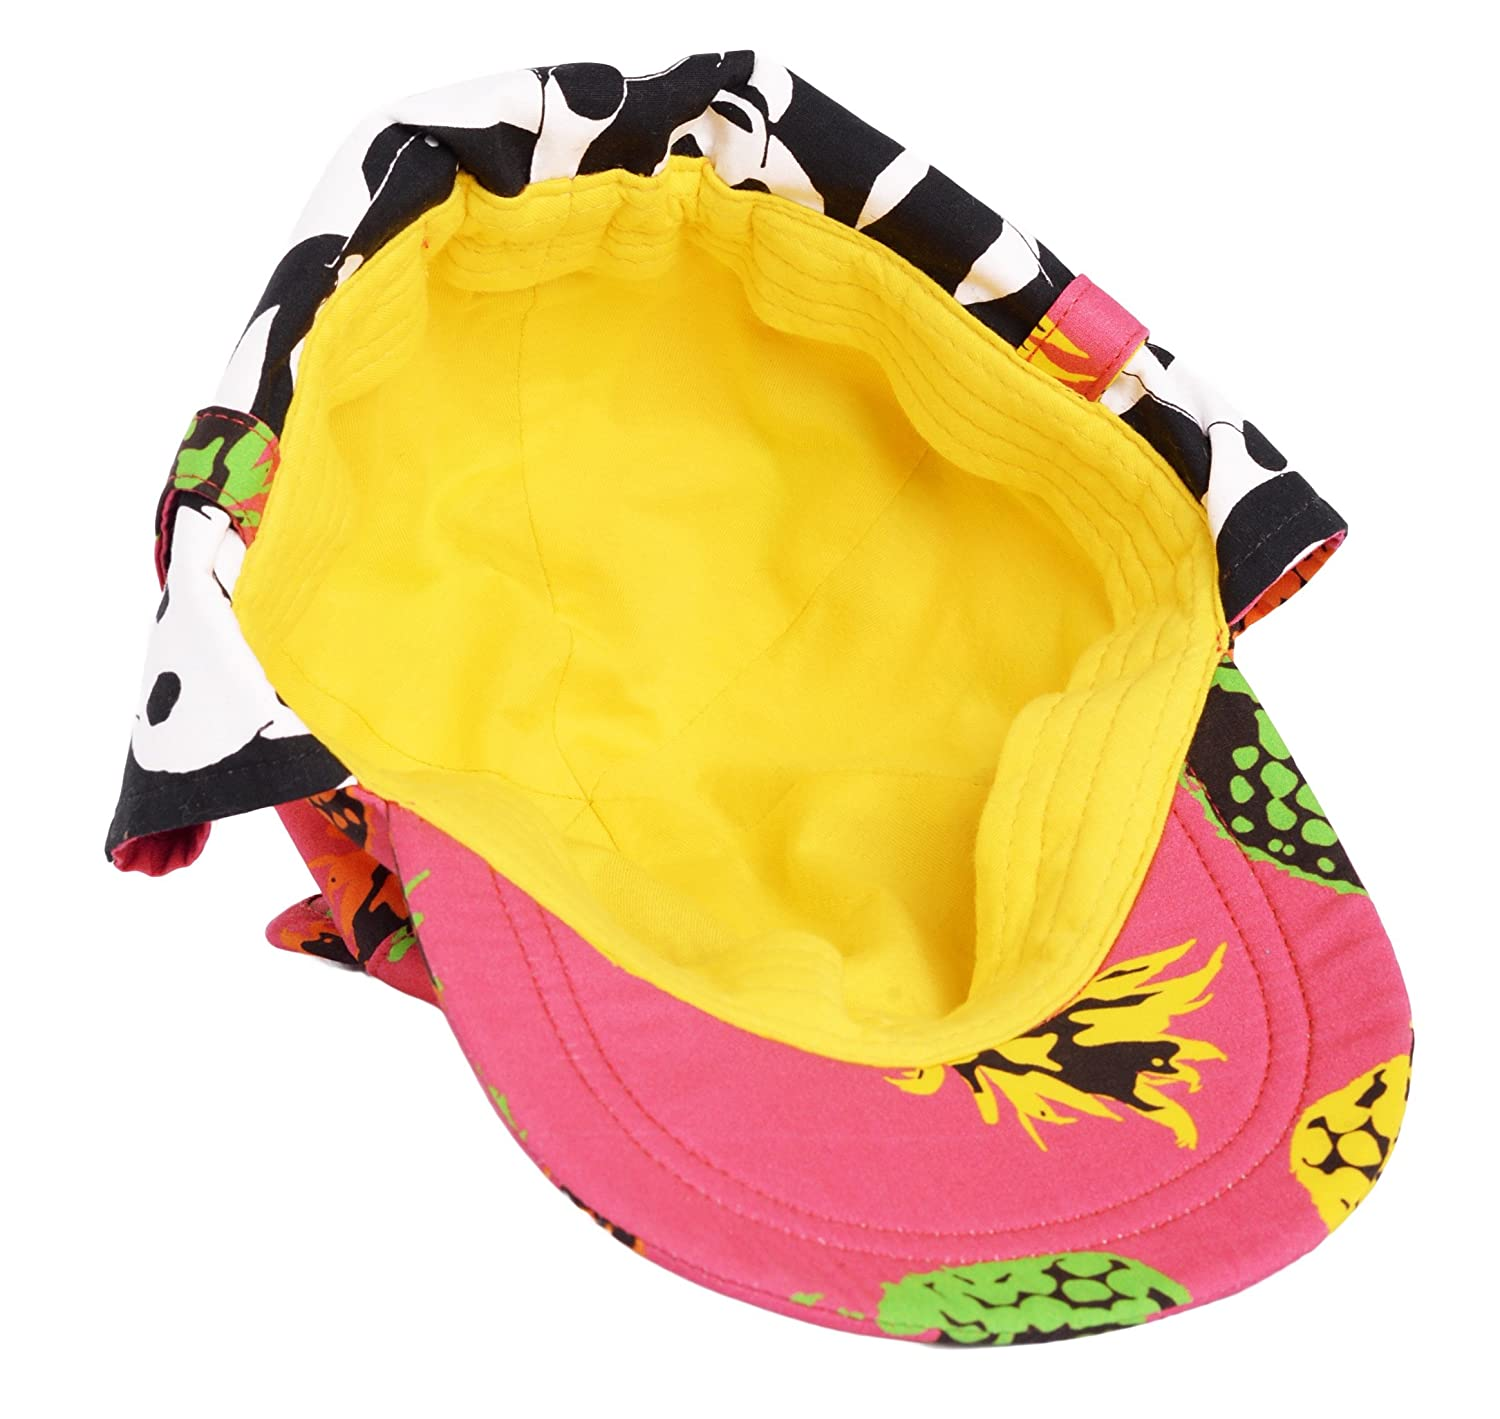 4df19bb51a946 Cub Hat Pineapple Punch (0-6 months)  Amazon.co.uk  Baby